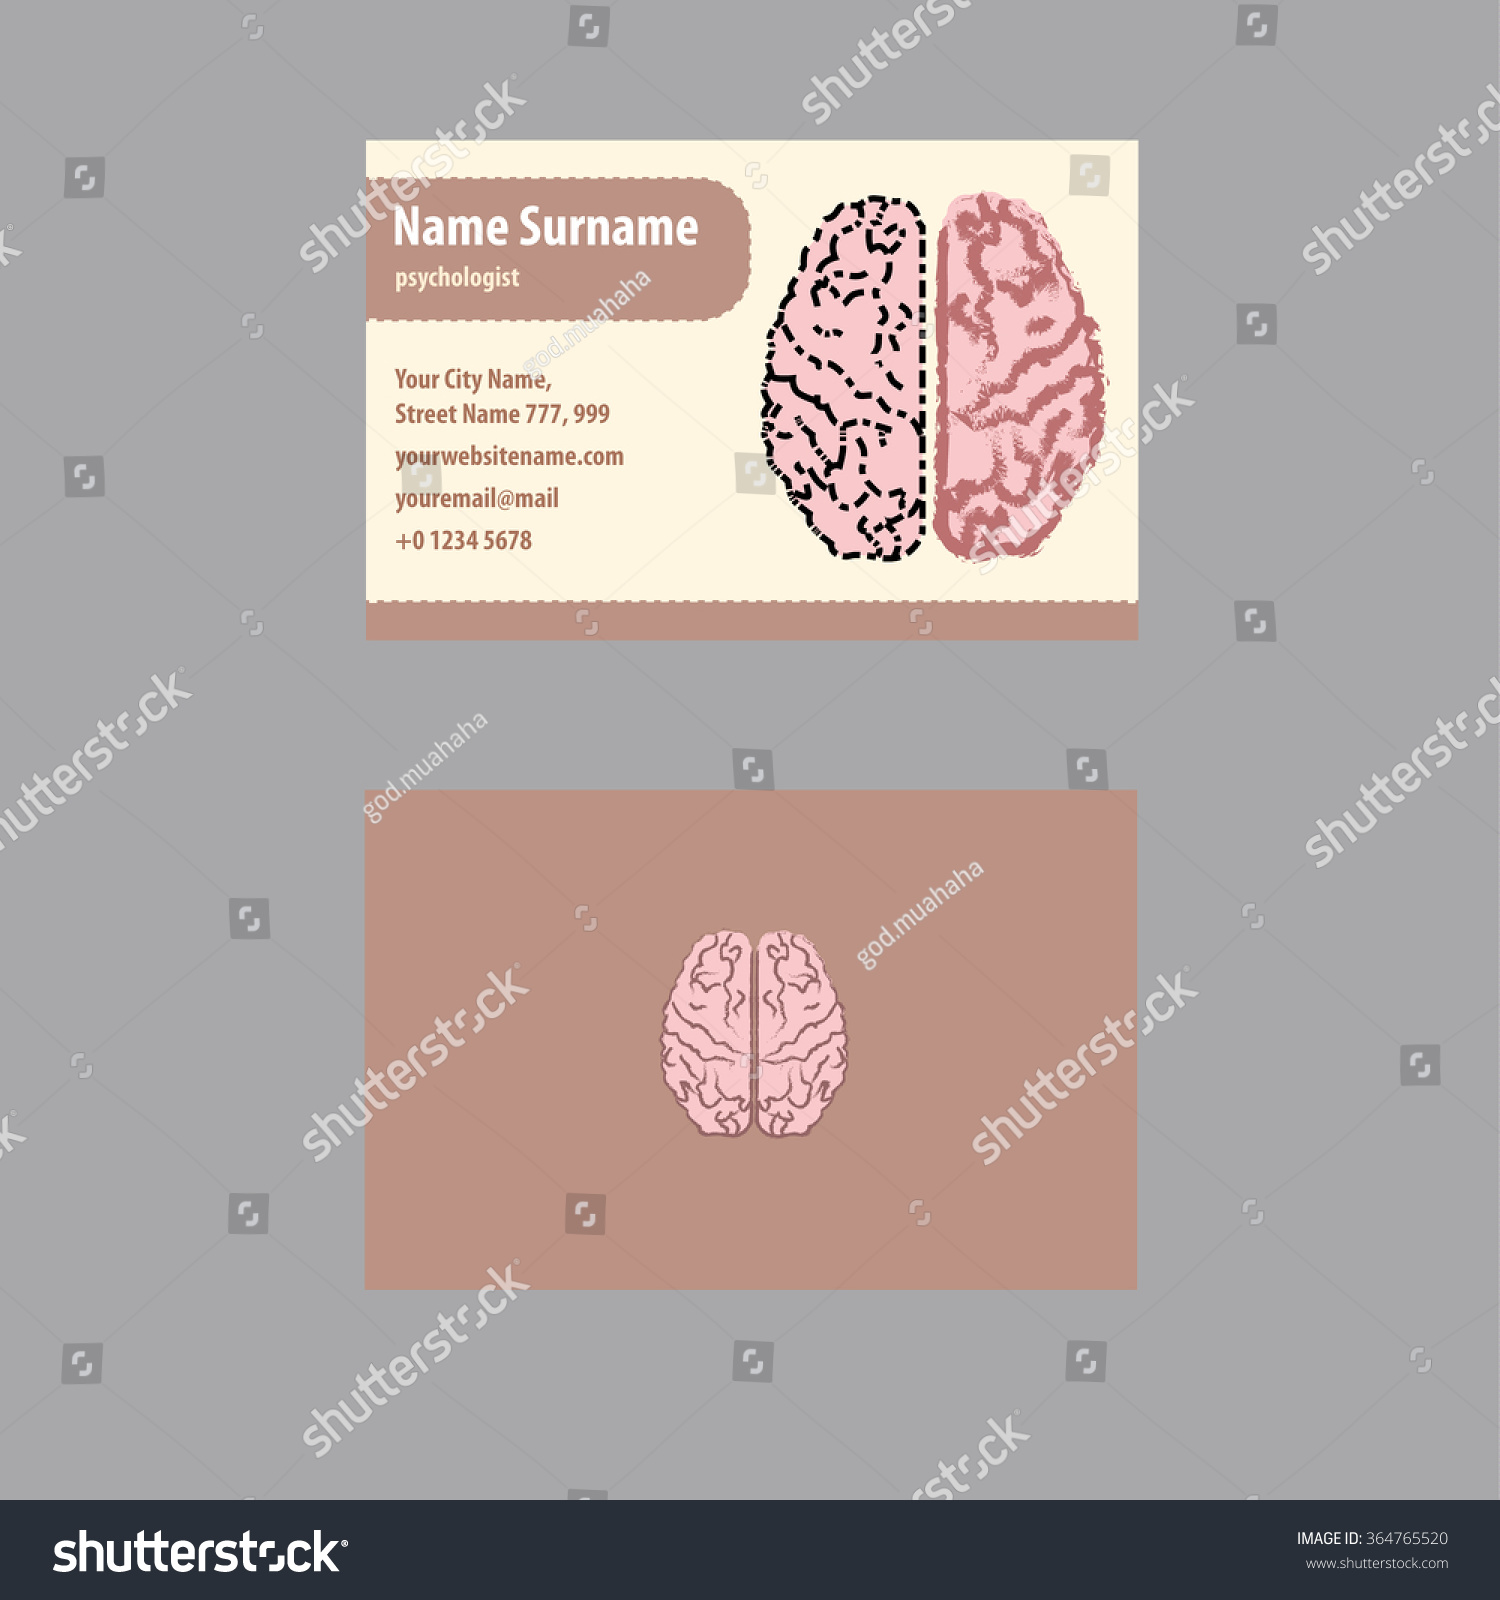 Business Card Psychologist Psychiatrist Stock Vector HD (Royalty ...